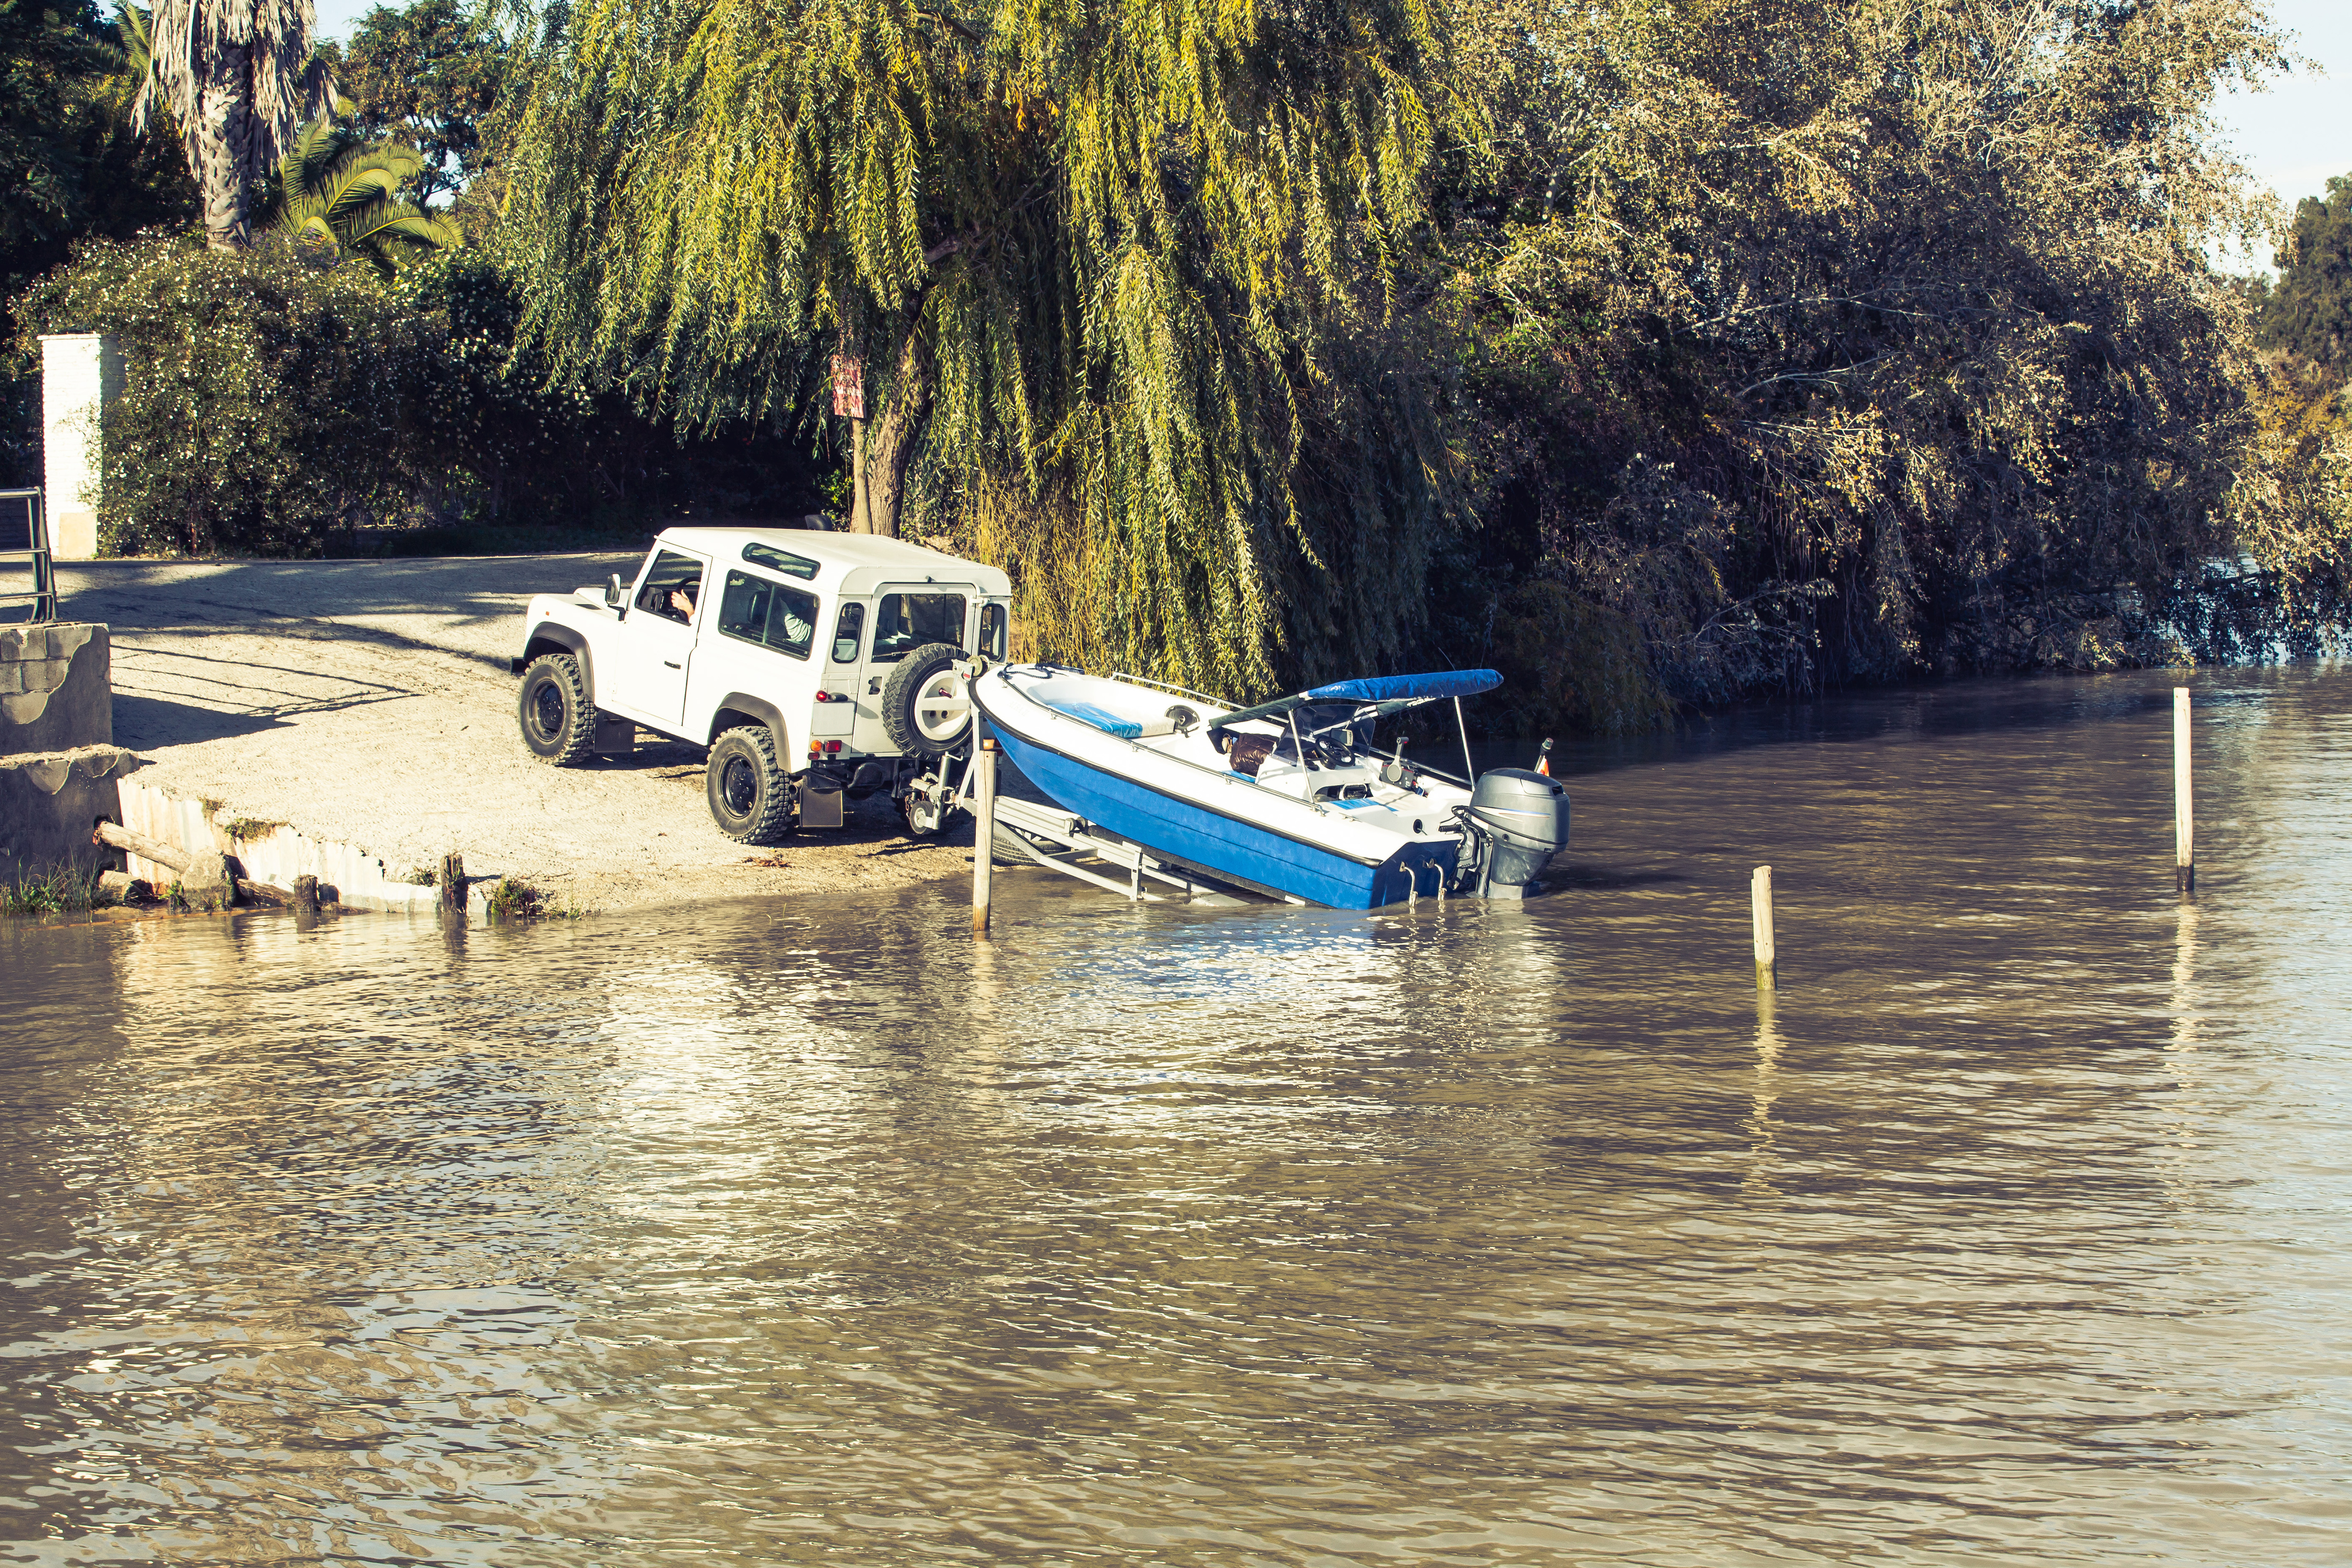 All terrain vehicle towing a trailer with a boat on top into the water.